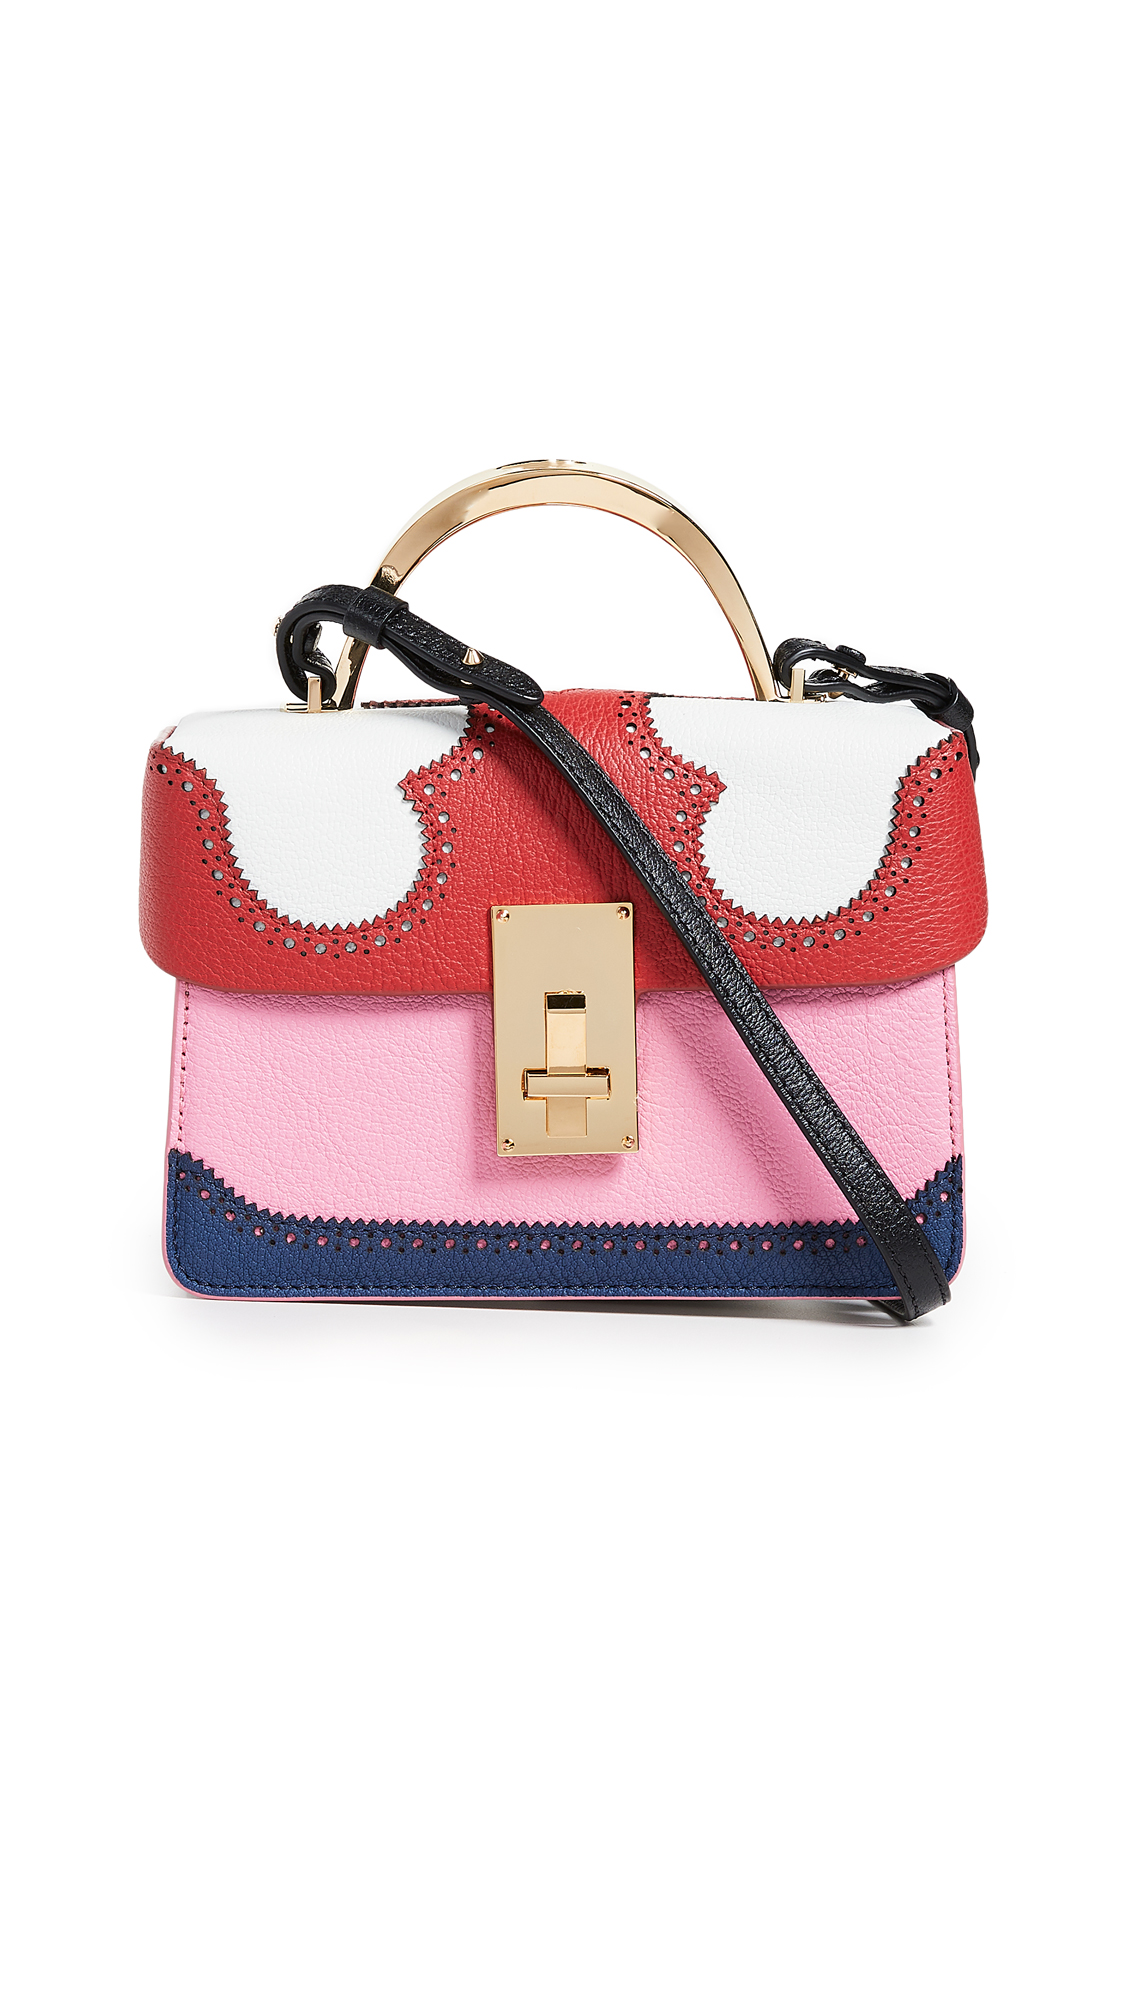 THE VOLON DATA ALICE SATCHEL